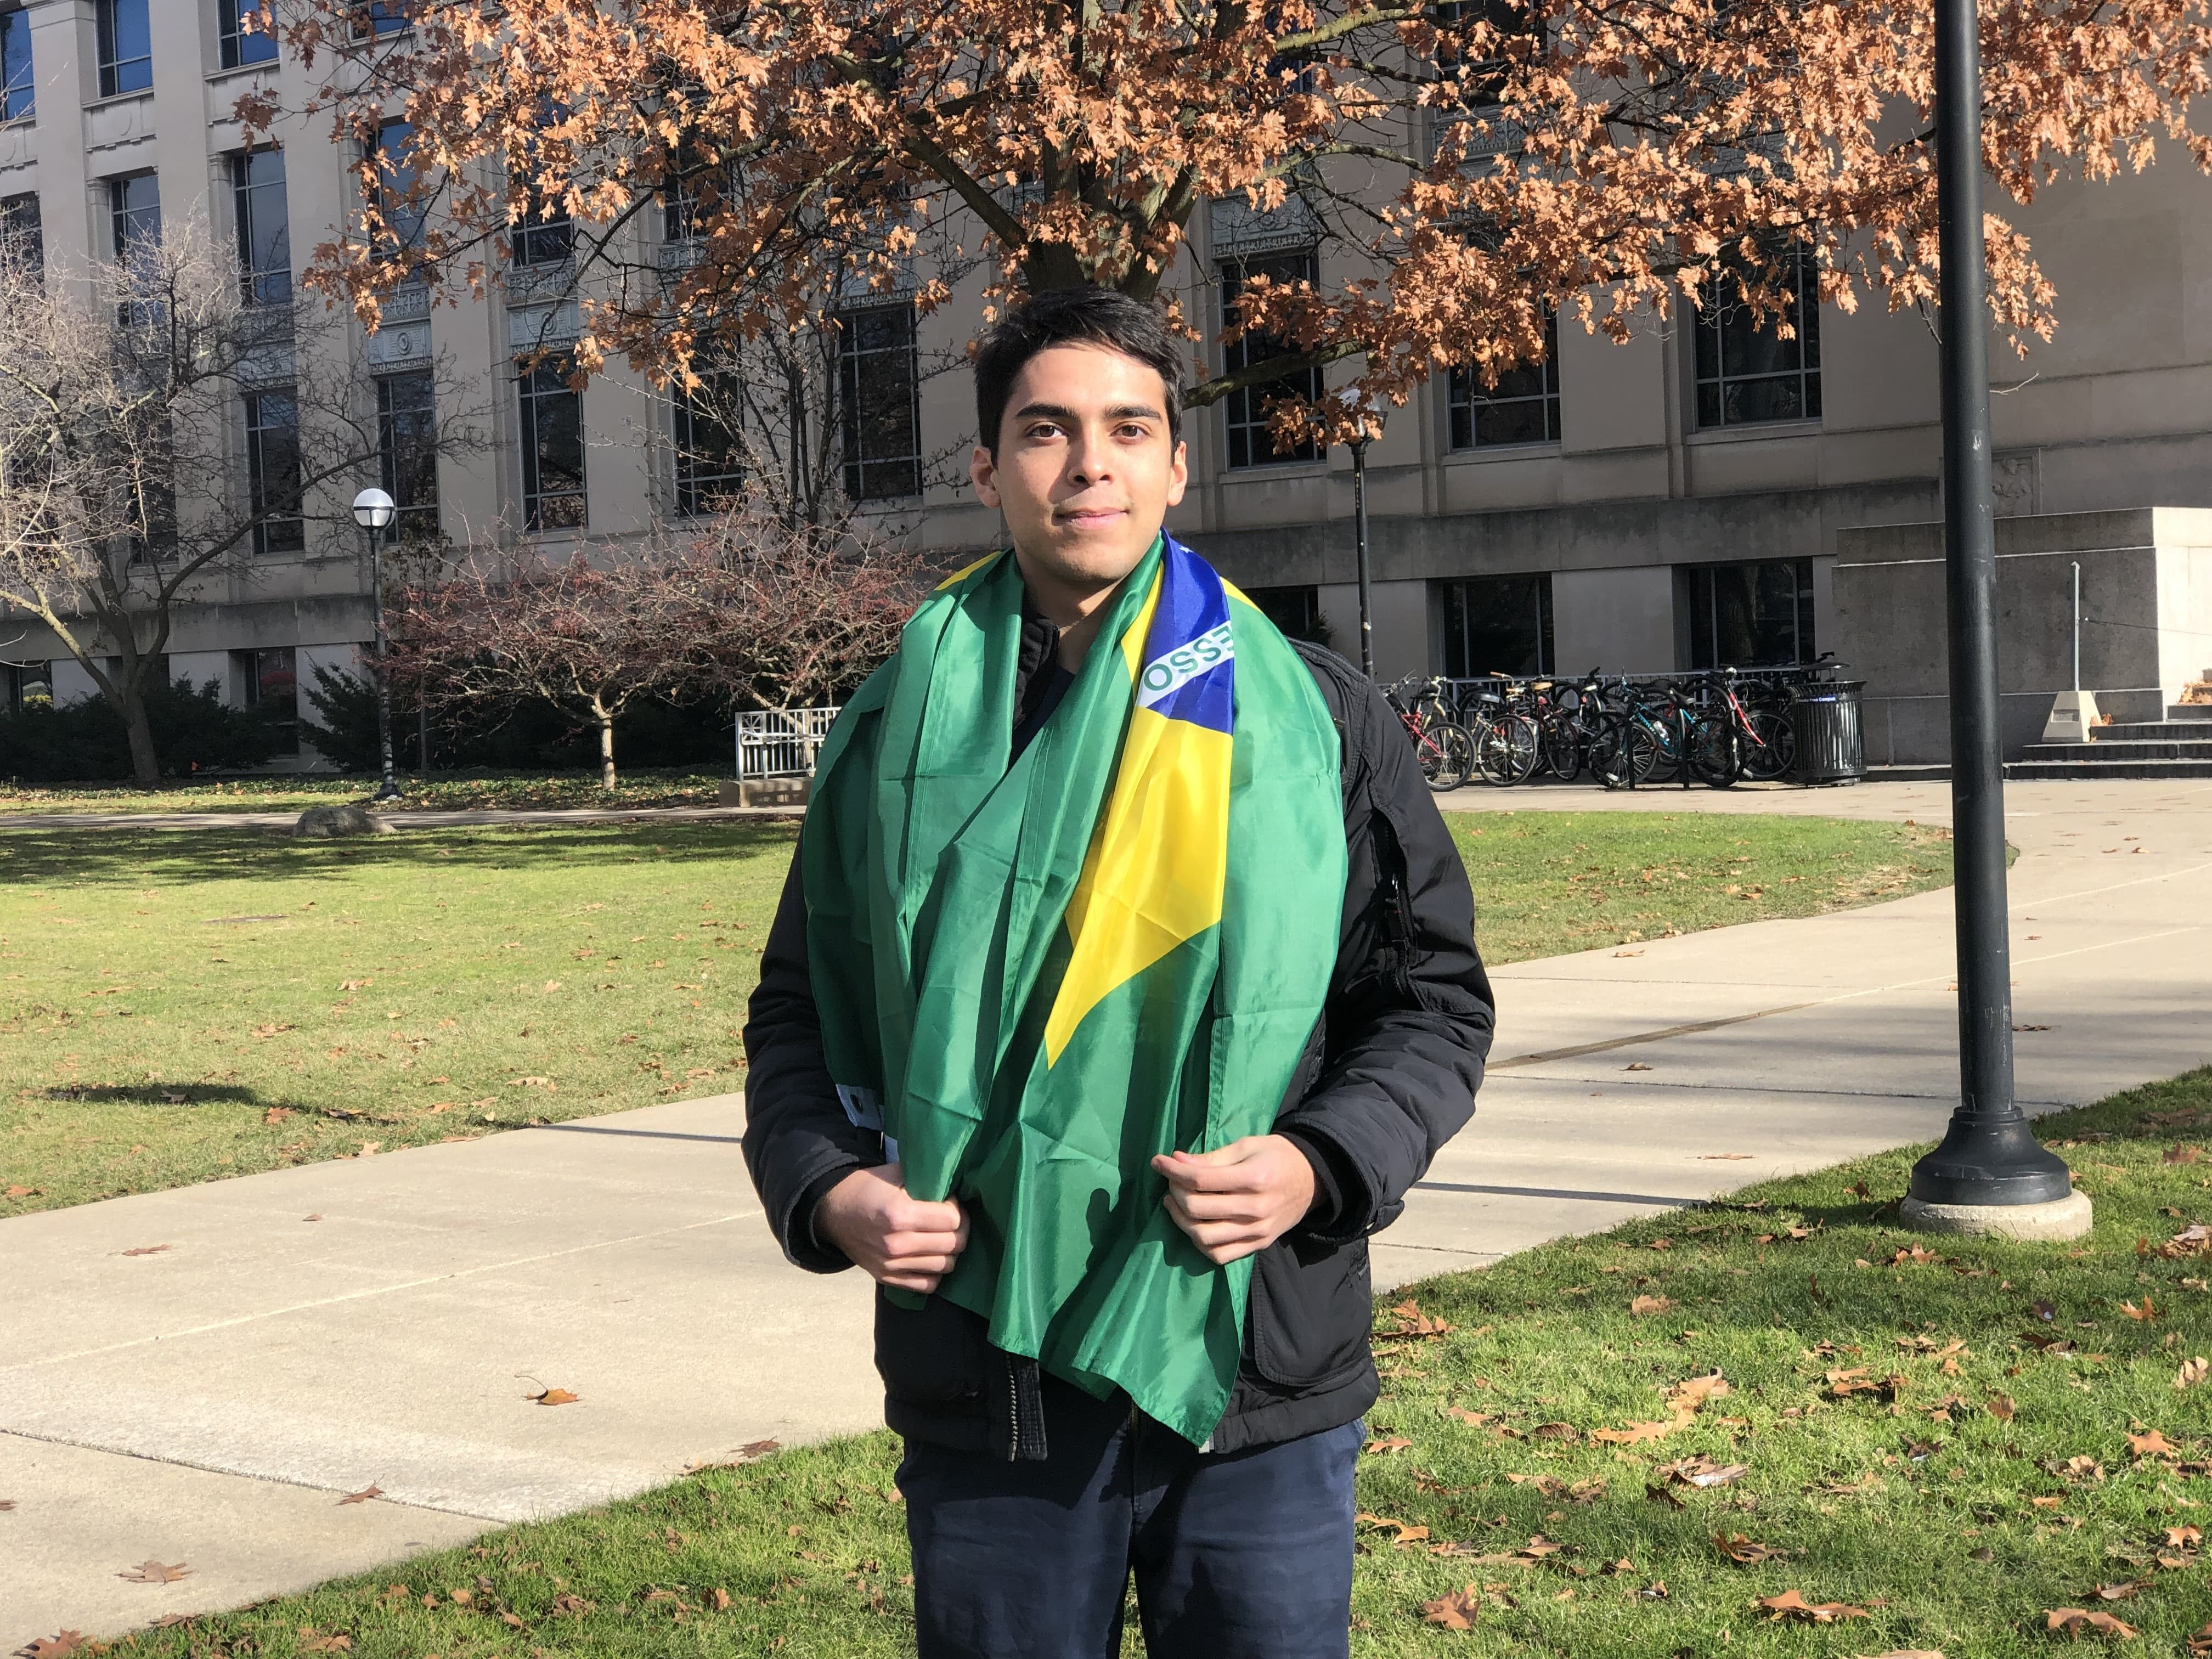 Eduardo Batista with Brazilian flag